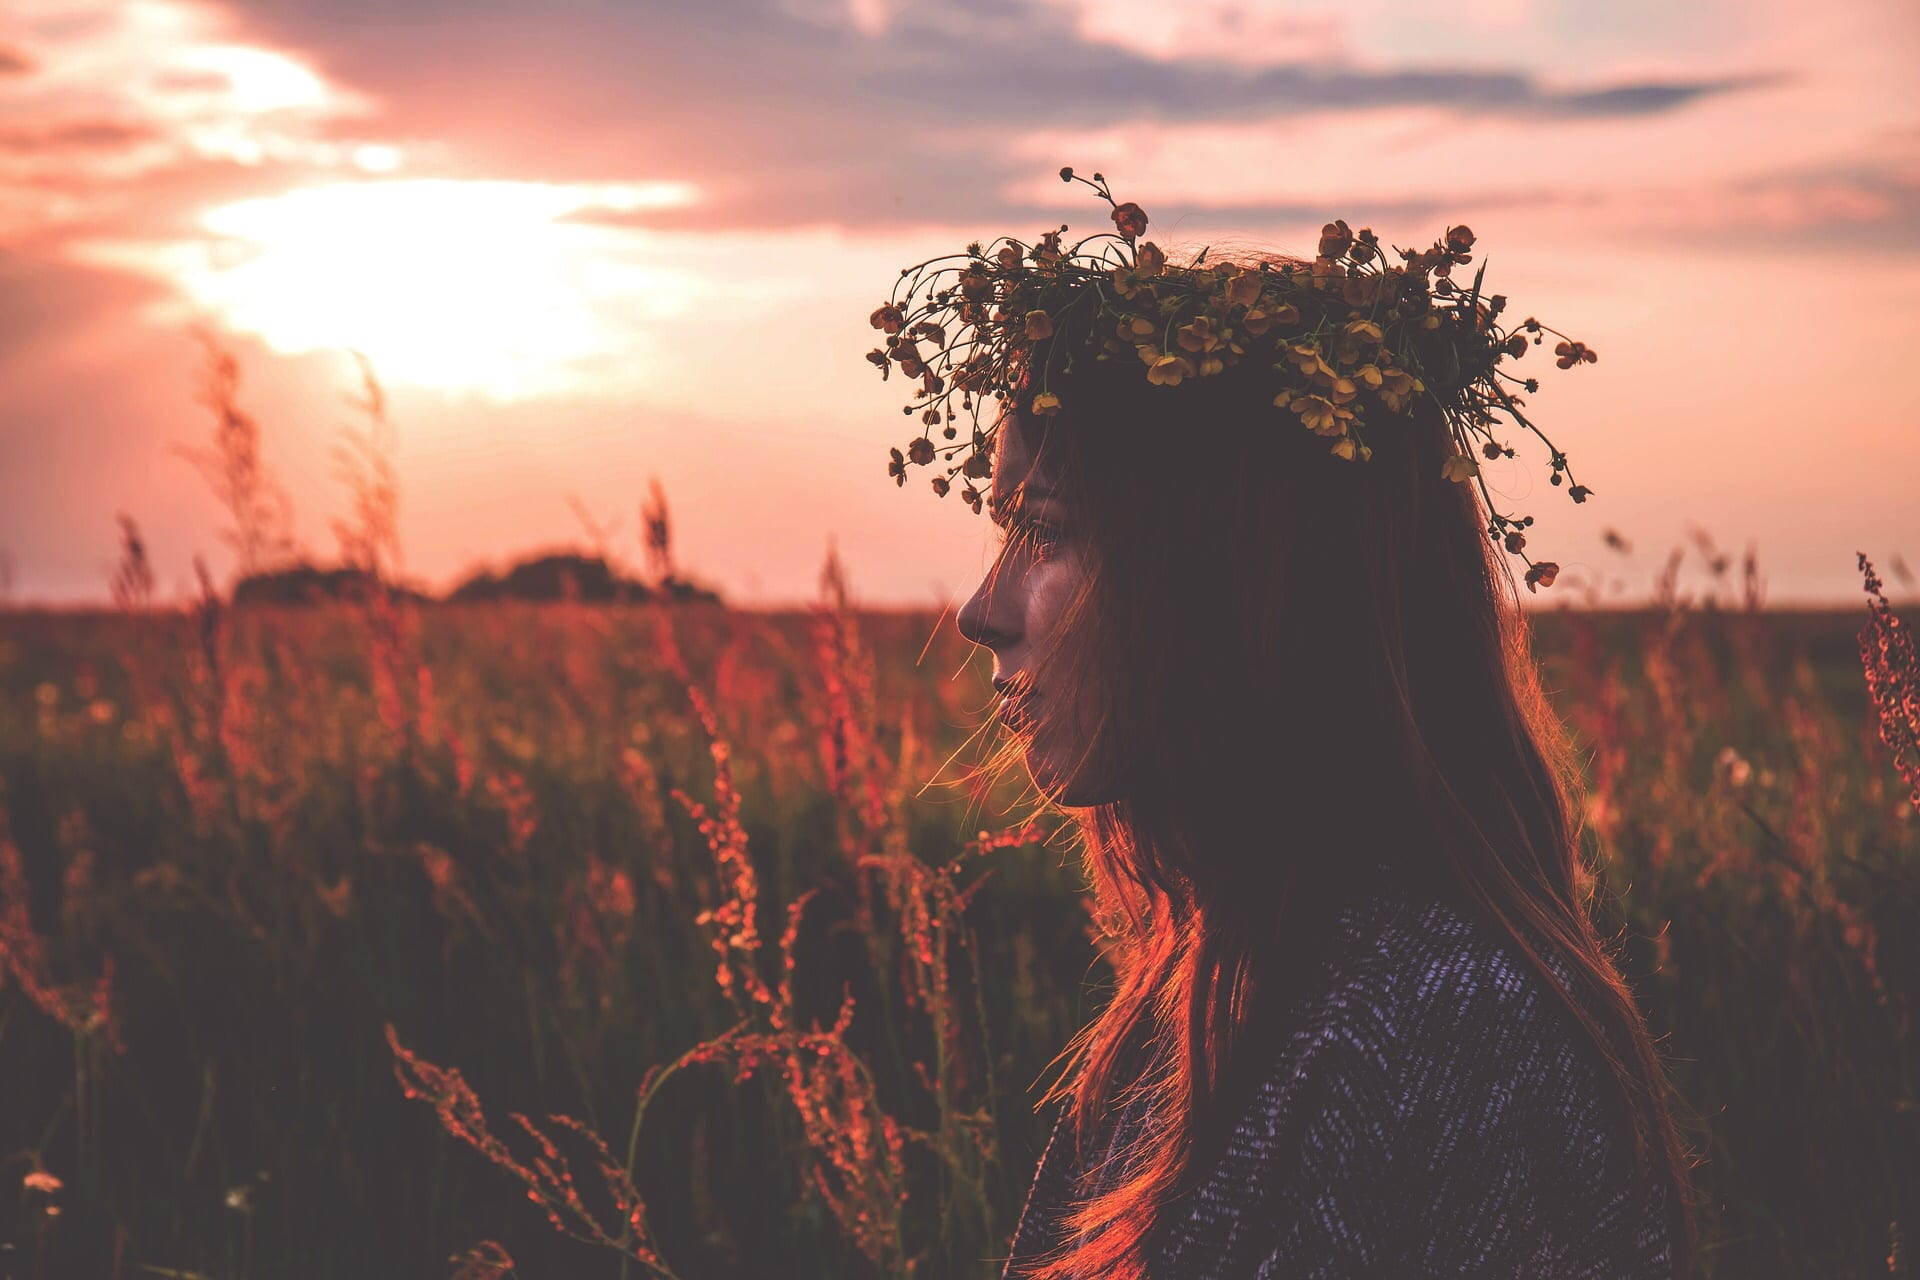 woman in flower crown in a field at night